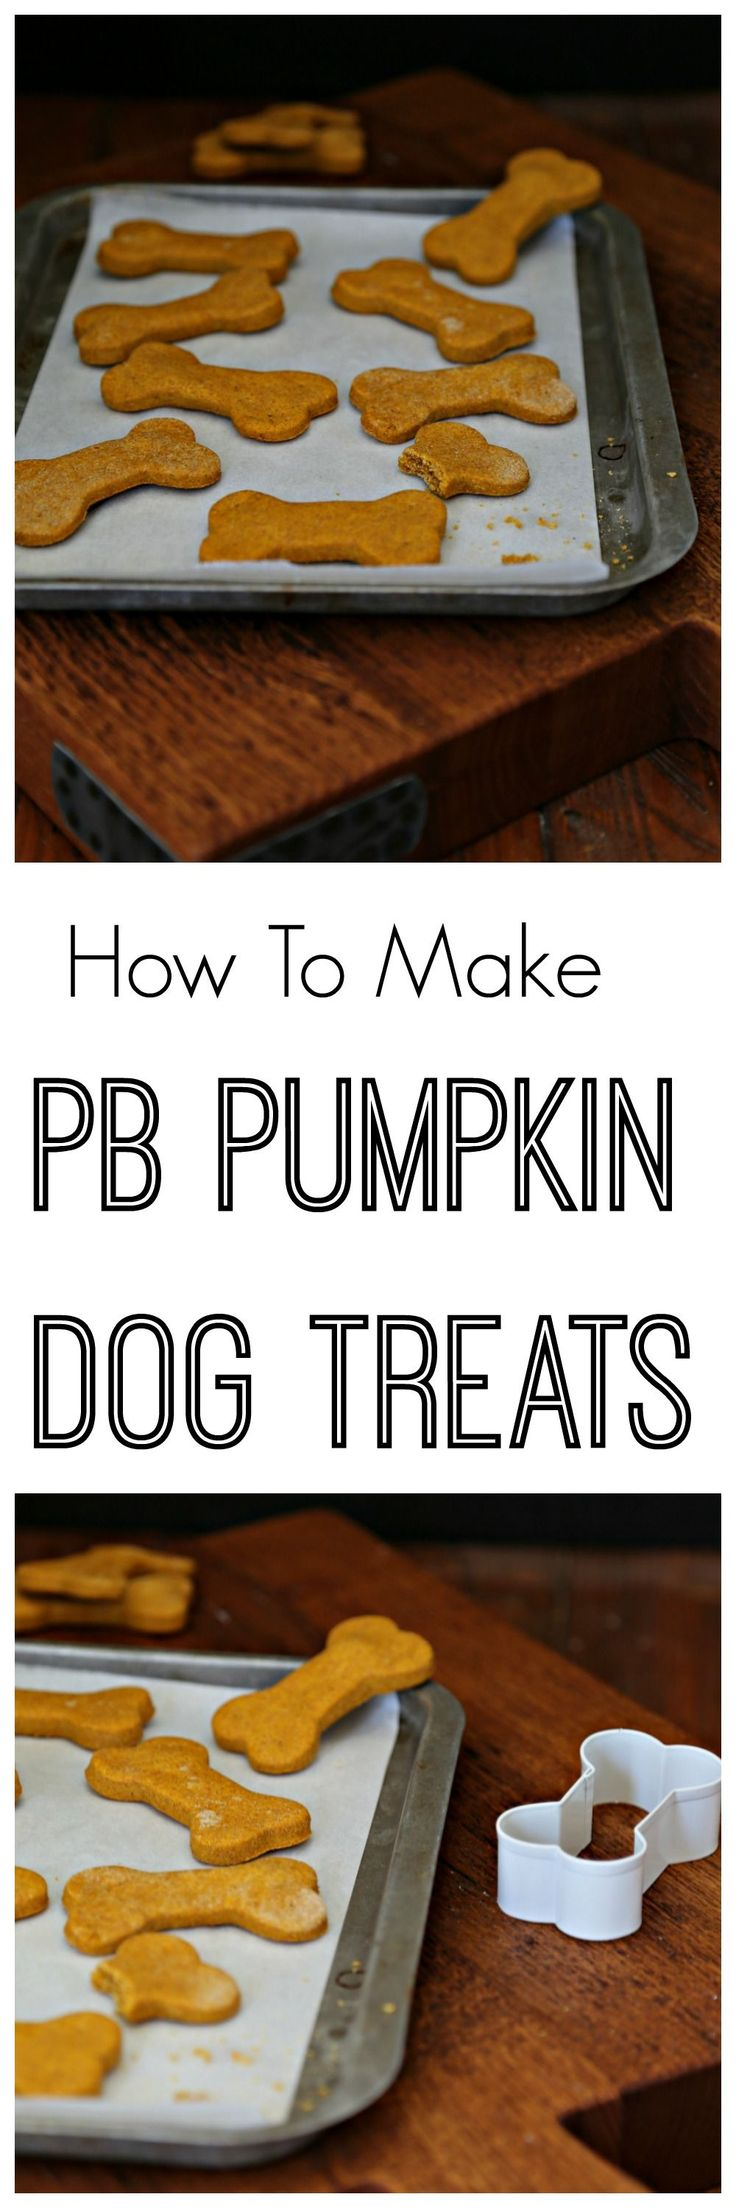 All natural and made with just 4 simple ingredients. Peanut Butter Pumpkin Dog Treats are treats your pups will love. #HealthyDogFood